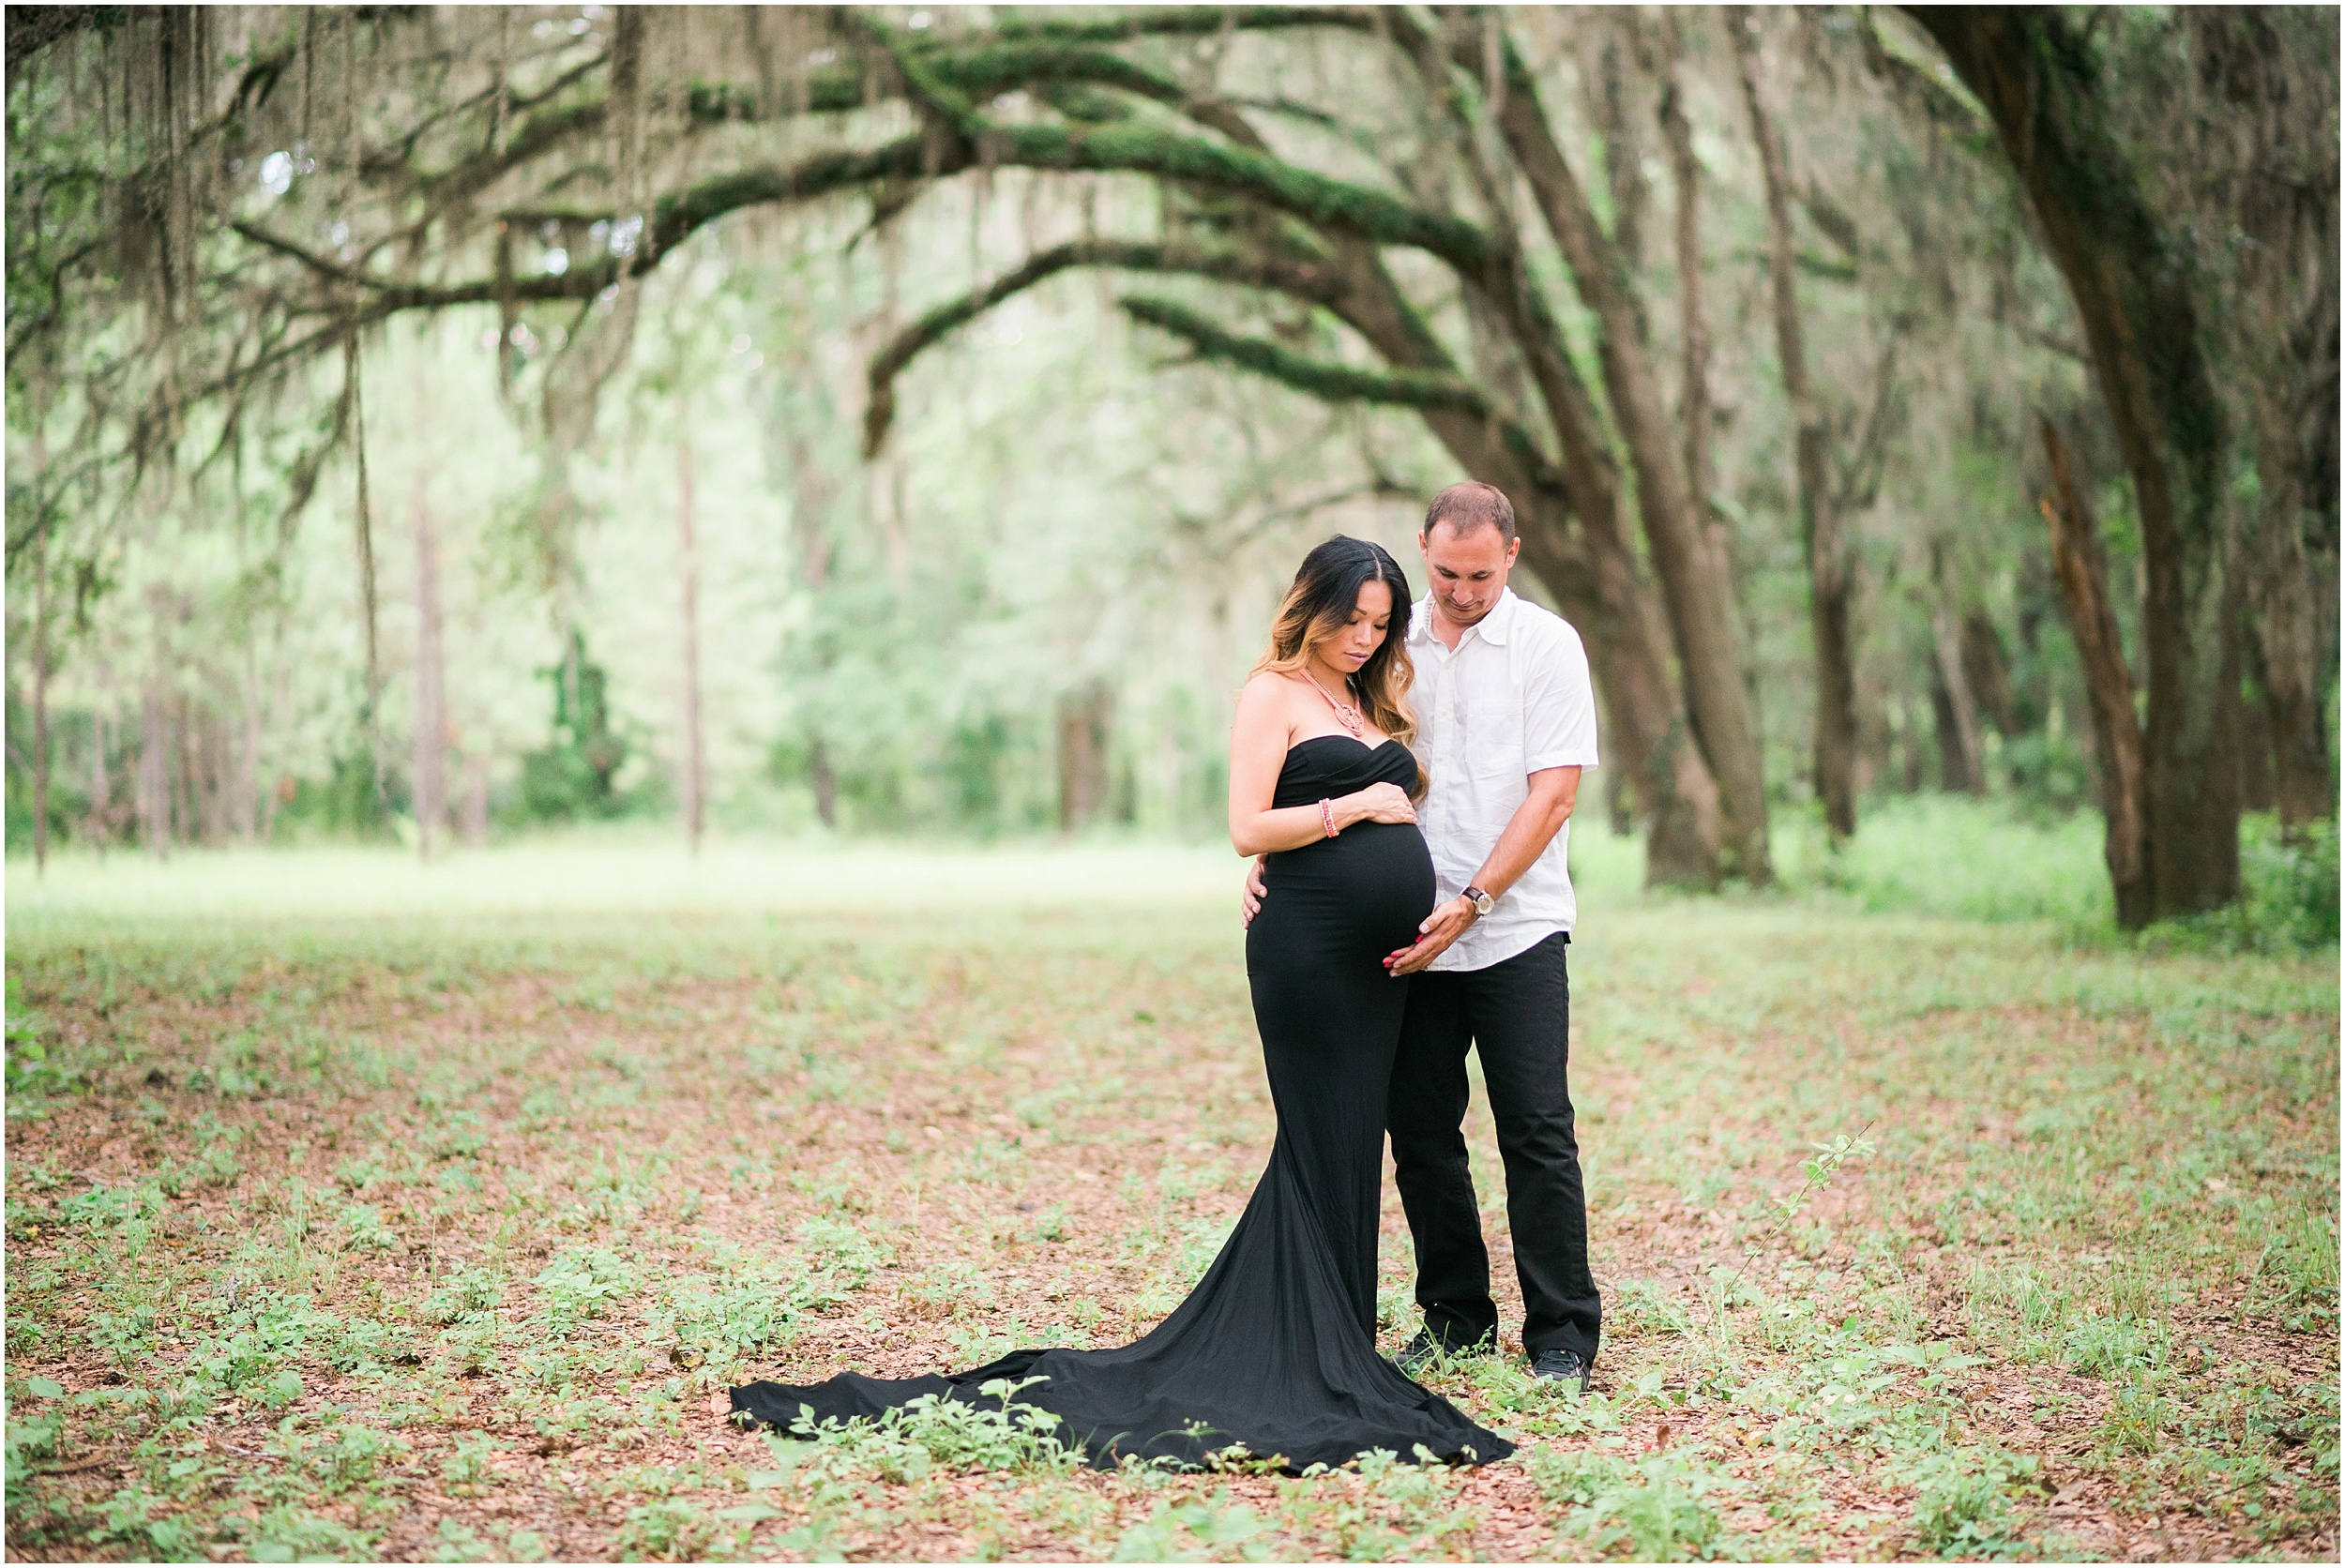 Linda & Thomas Maternity Session in Quitman, Georgia_0002.jpg